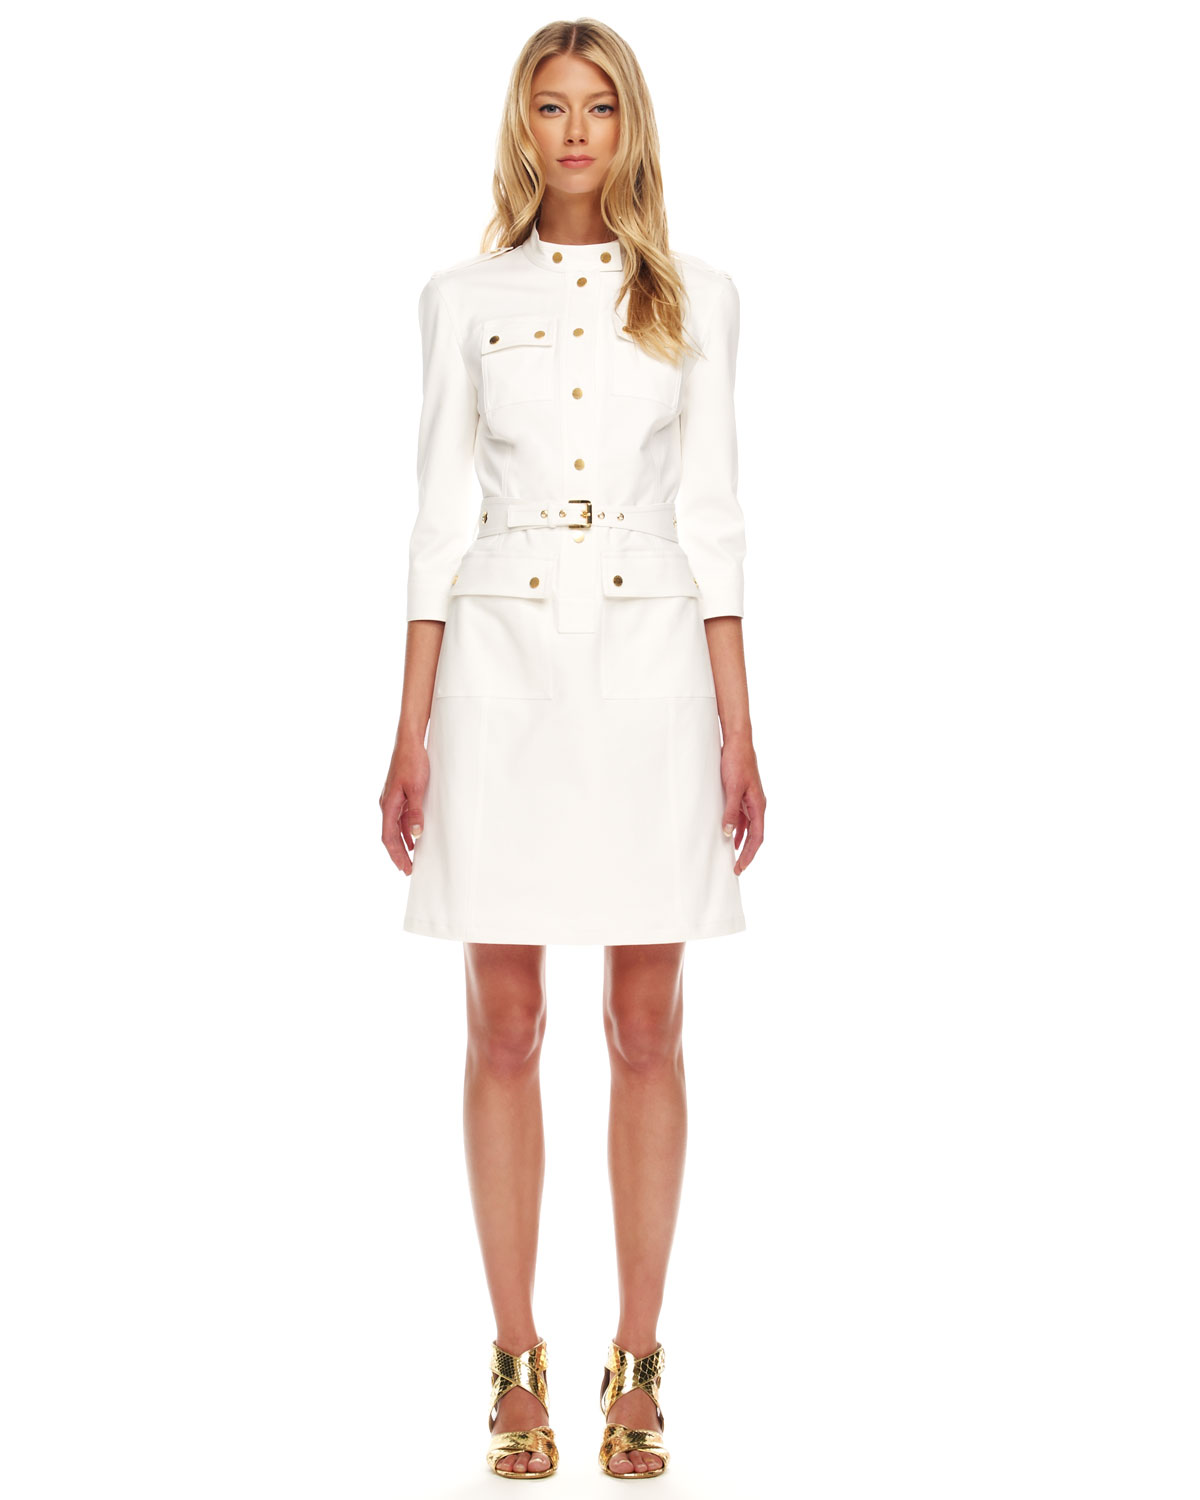 Michael kors Twill Military Dress in White | Lyst